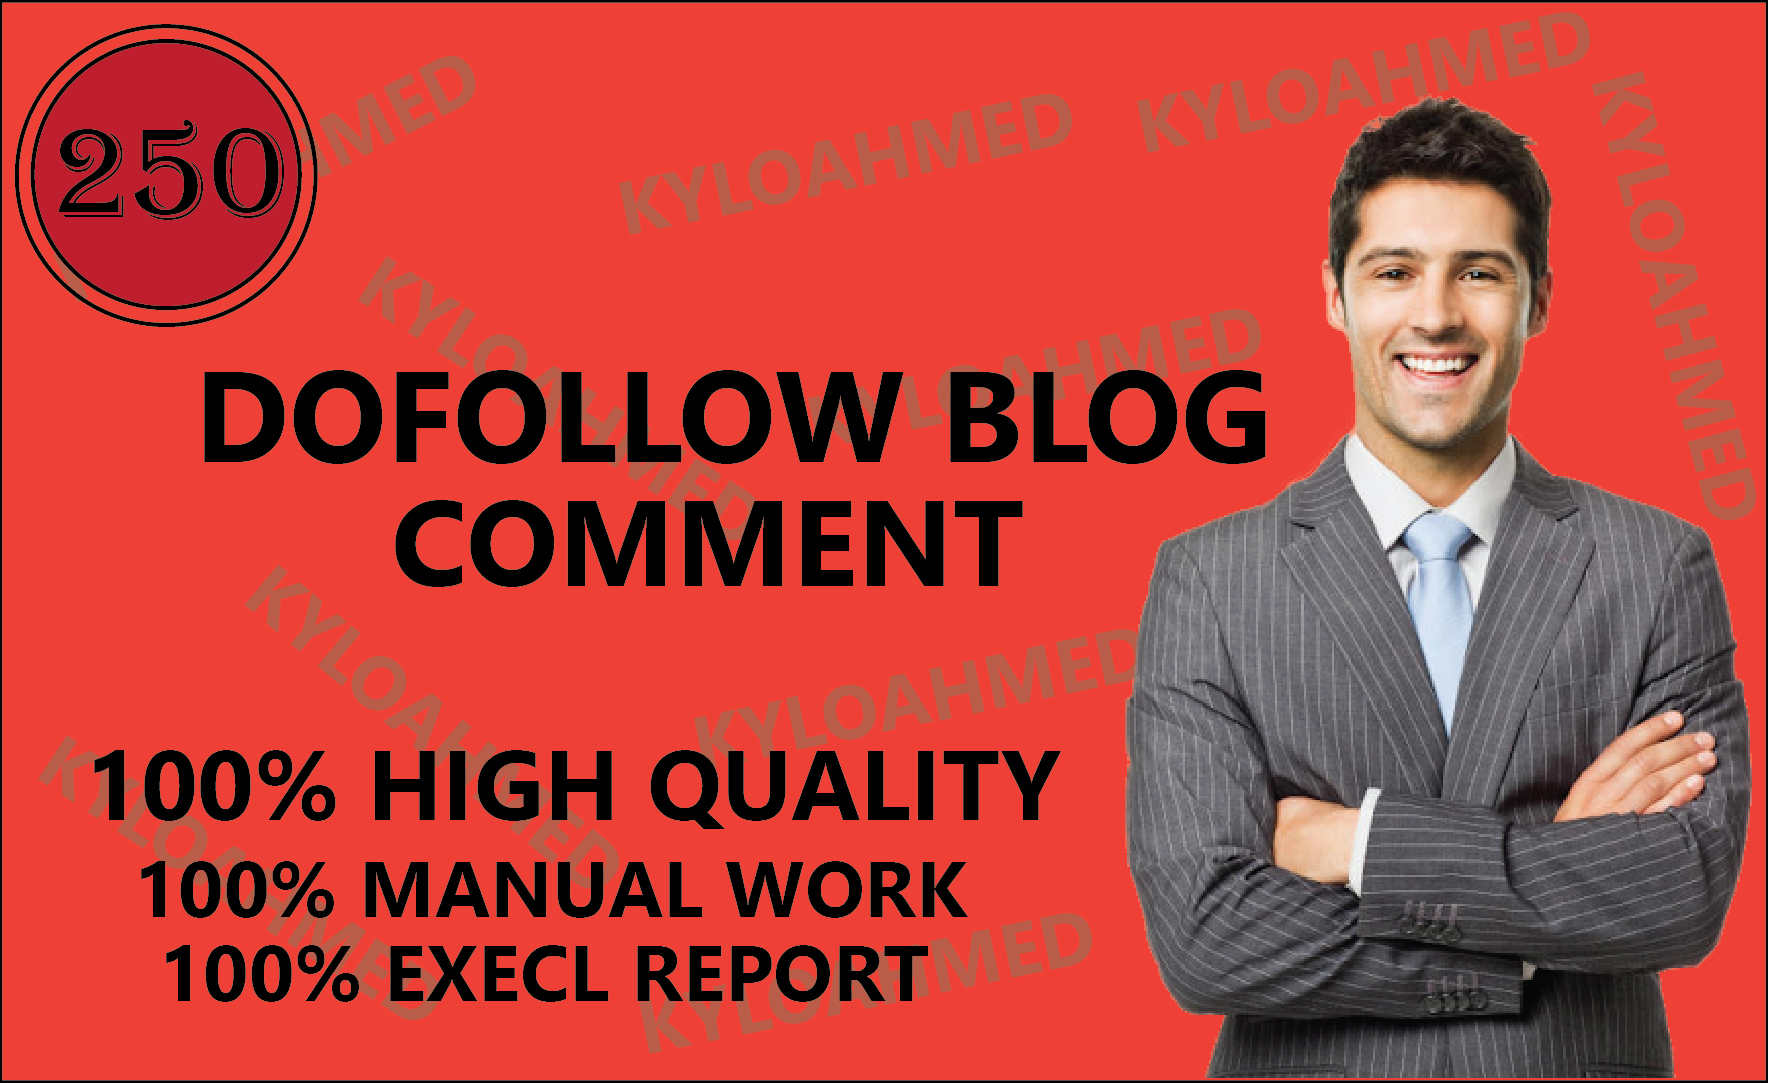 I will create 250 dofollow blog comment seo services backlinks